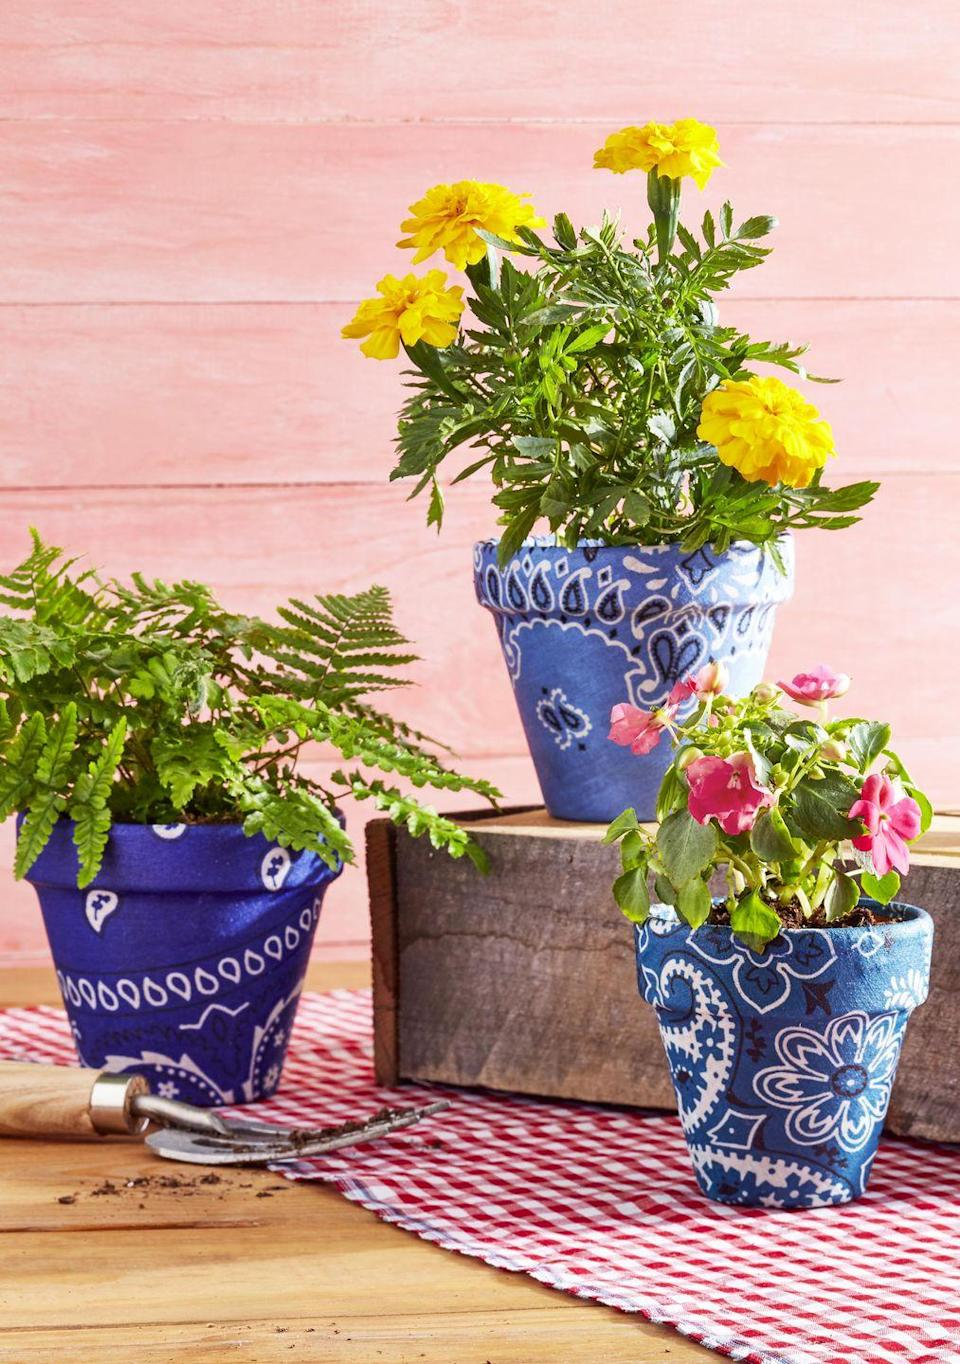 <p>Brighten up your pots by covering them in an array of colorful bandanas.<br><strong><br>To make:</strong> Use Mod Podge to attach a bandana to the outside of desired-size clay pots, folding fabric one inch over the top rim and cutting off extra fabric as needed. Once dry, fill with seasonal blooms or ferns.</p>